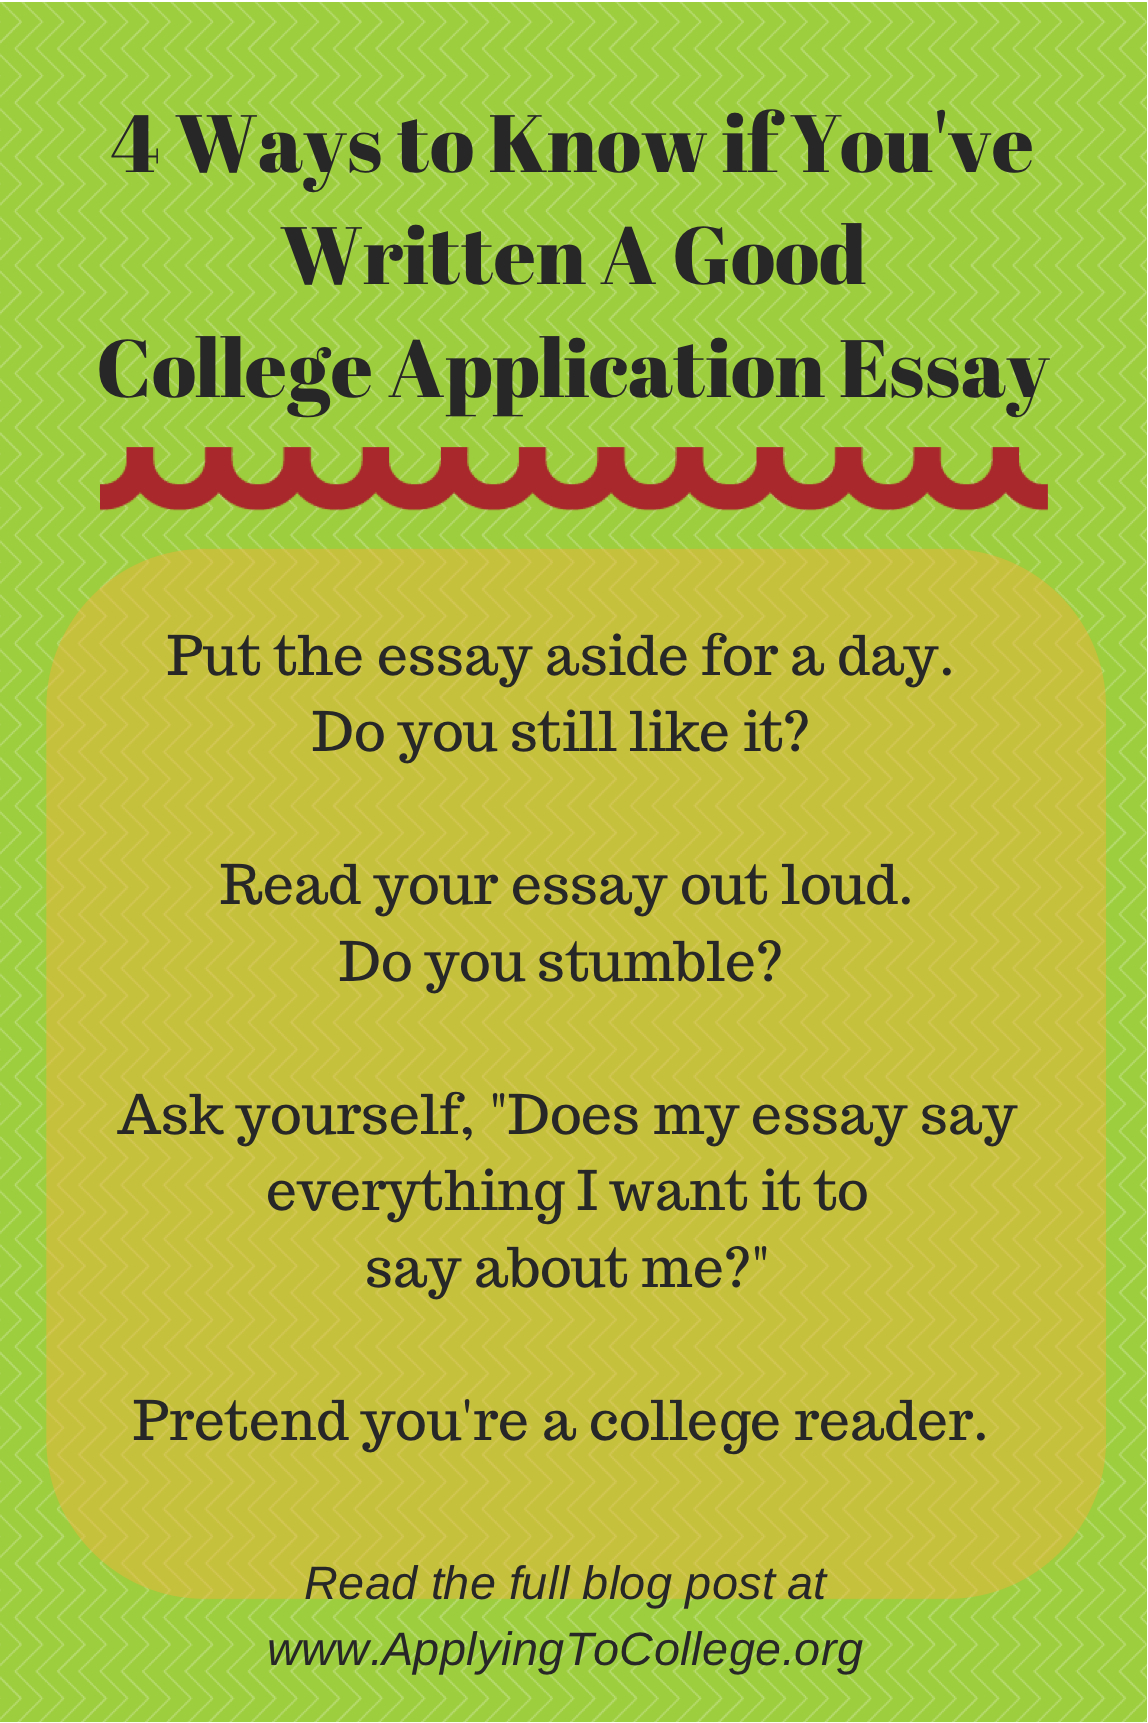 Writing an essay for college application video